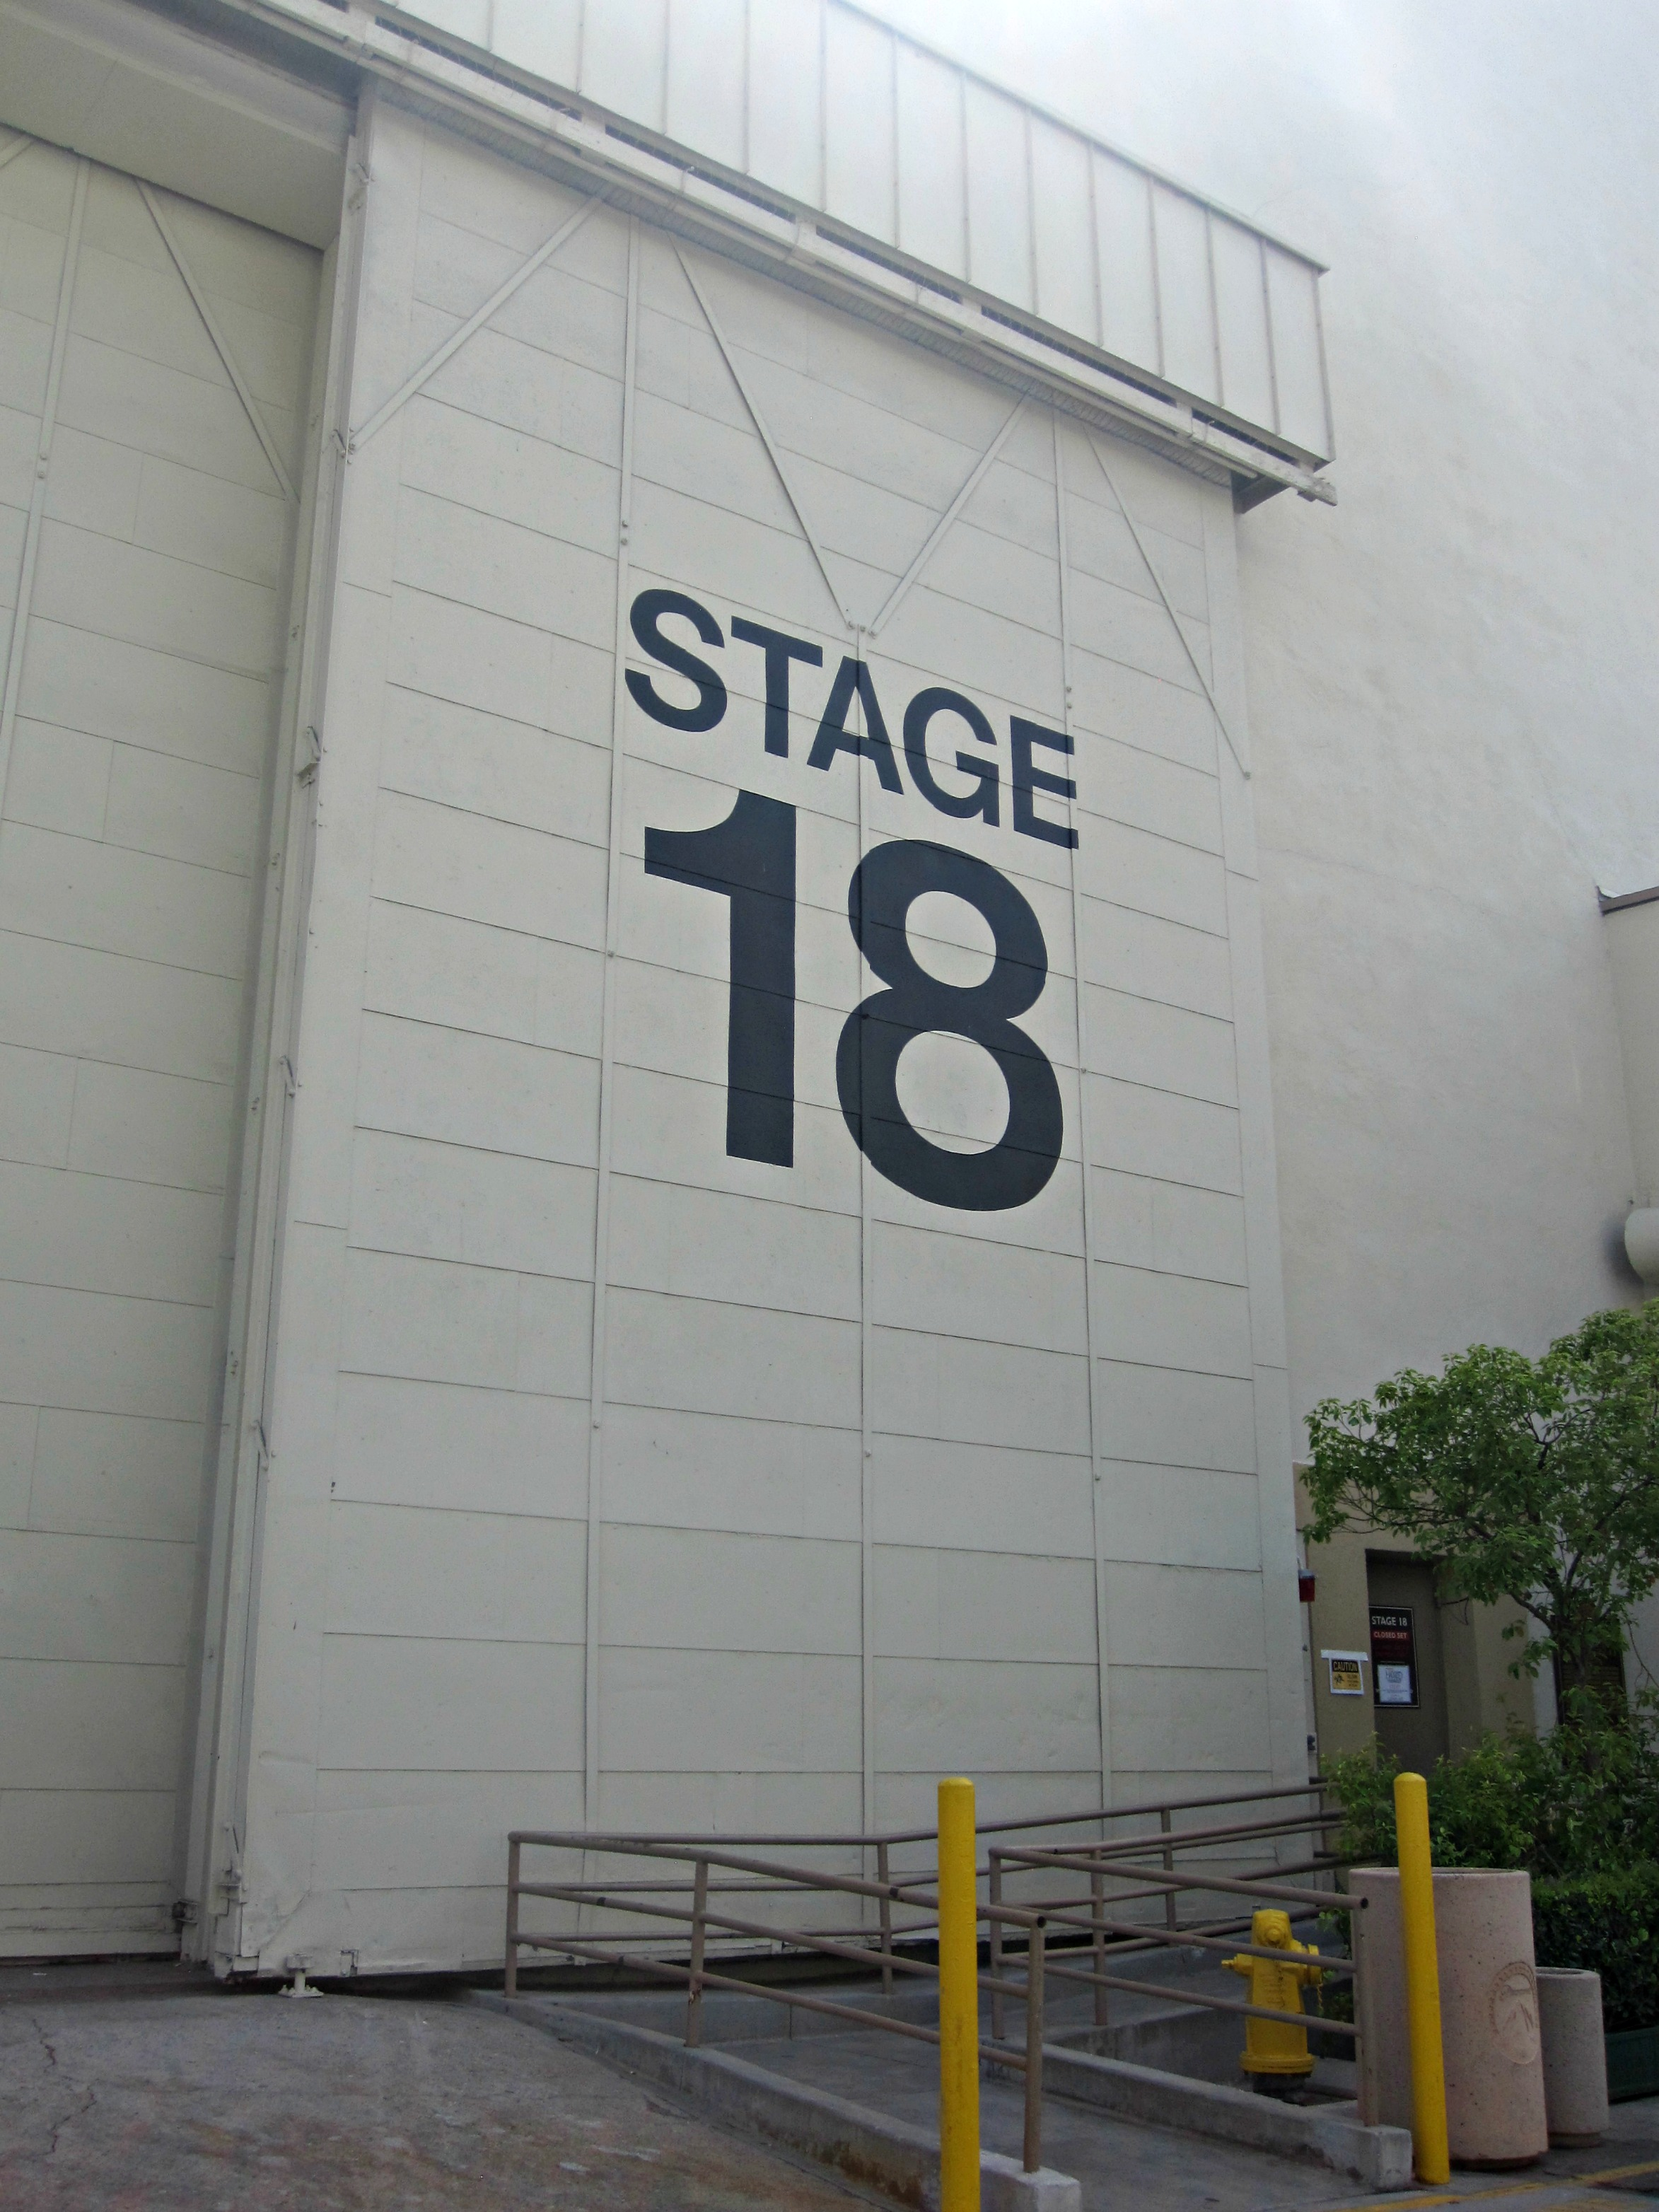 Stage 18 where one of my favorite films Rear Window was filmed.